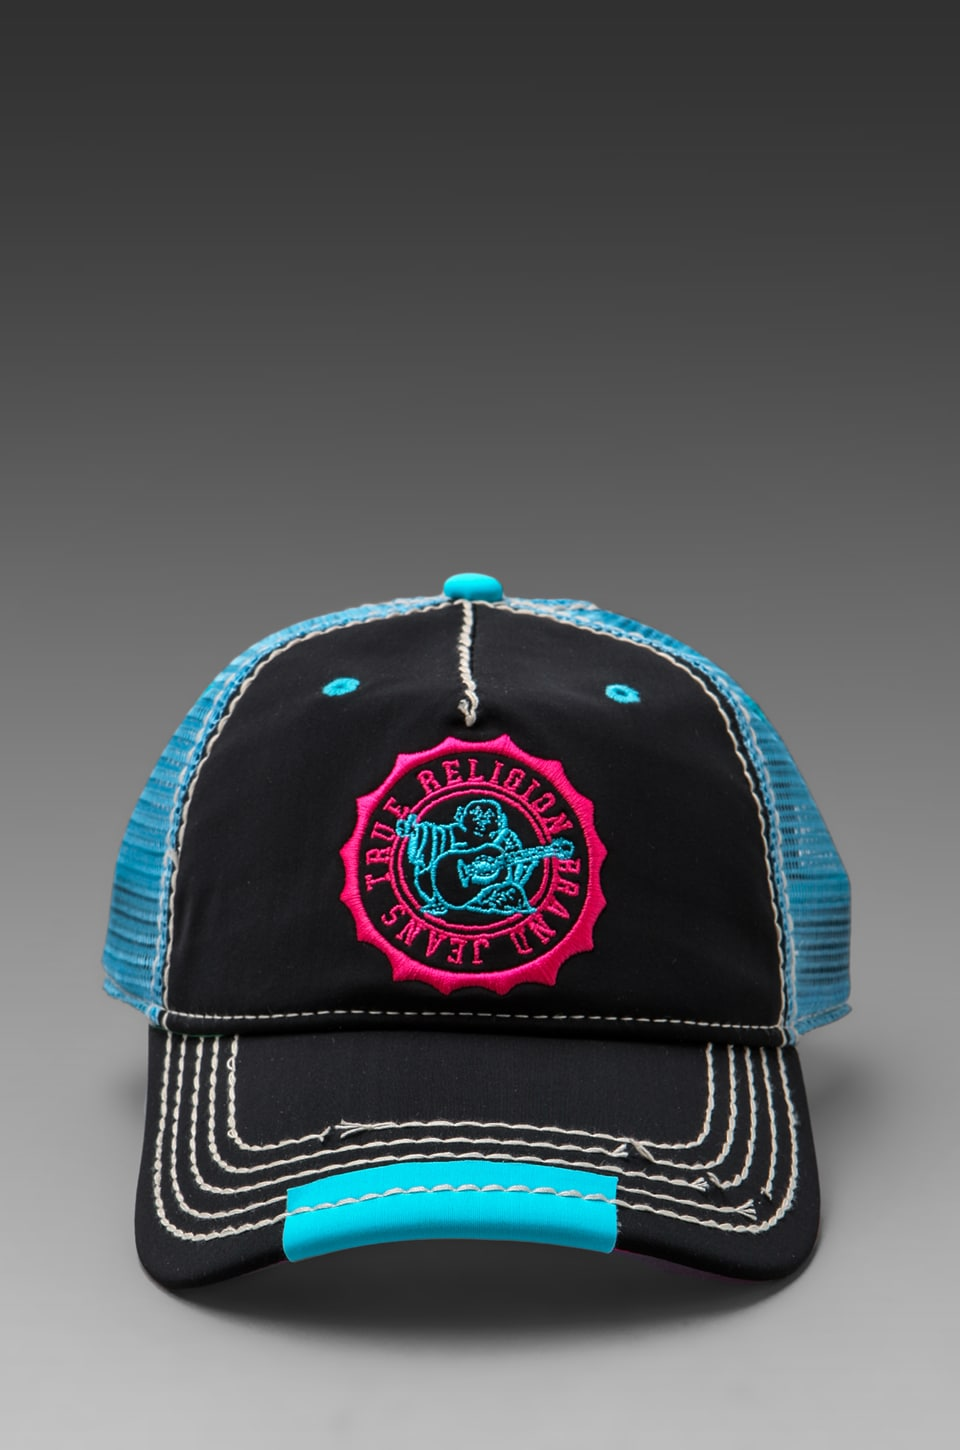 True Religion Neon Baseball Cap in Black